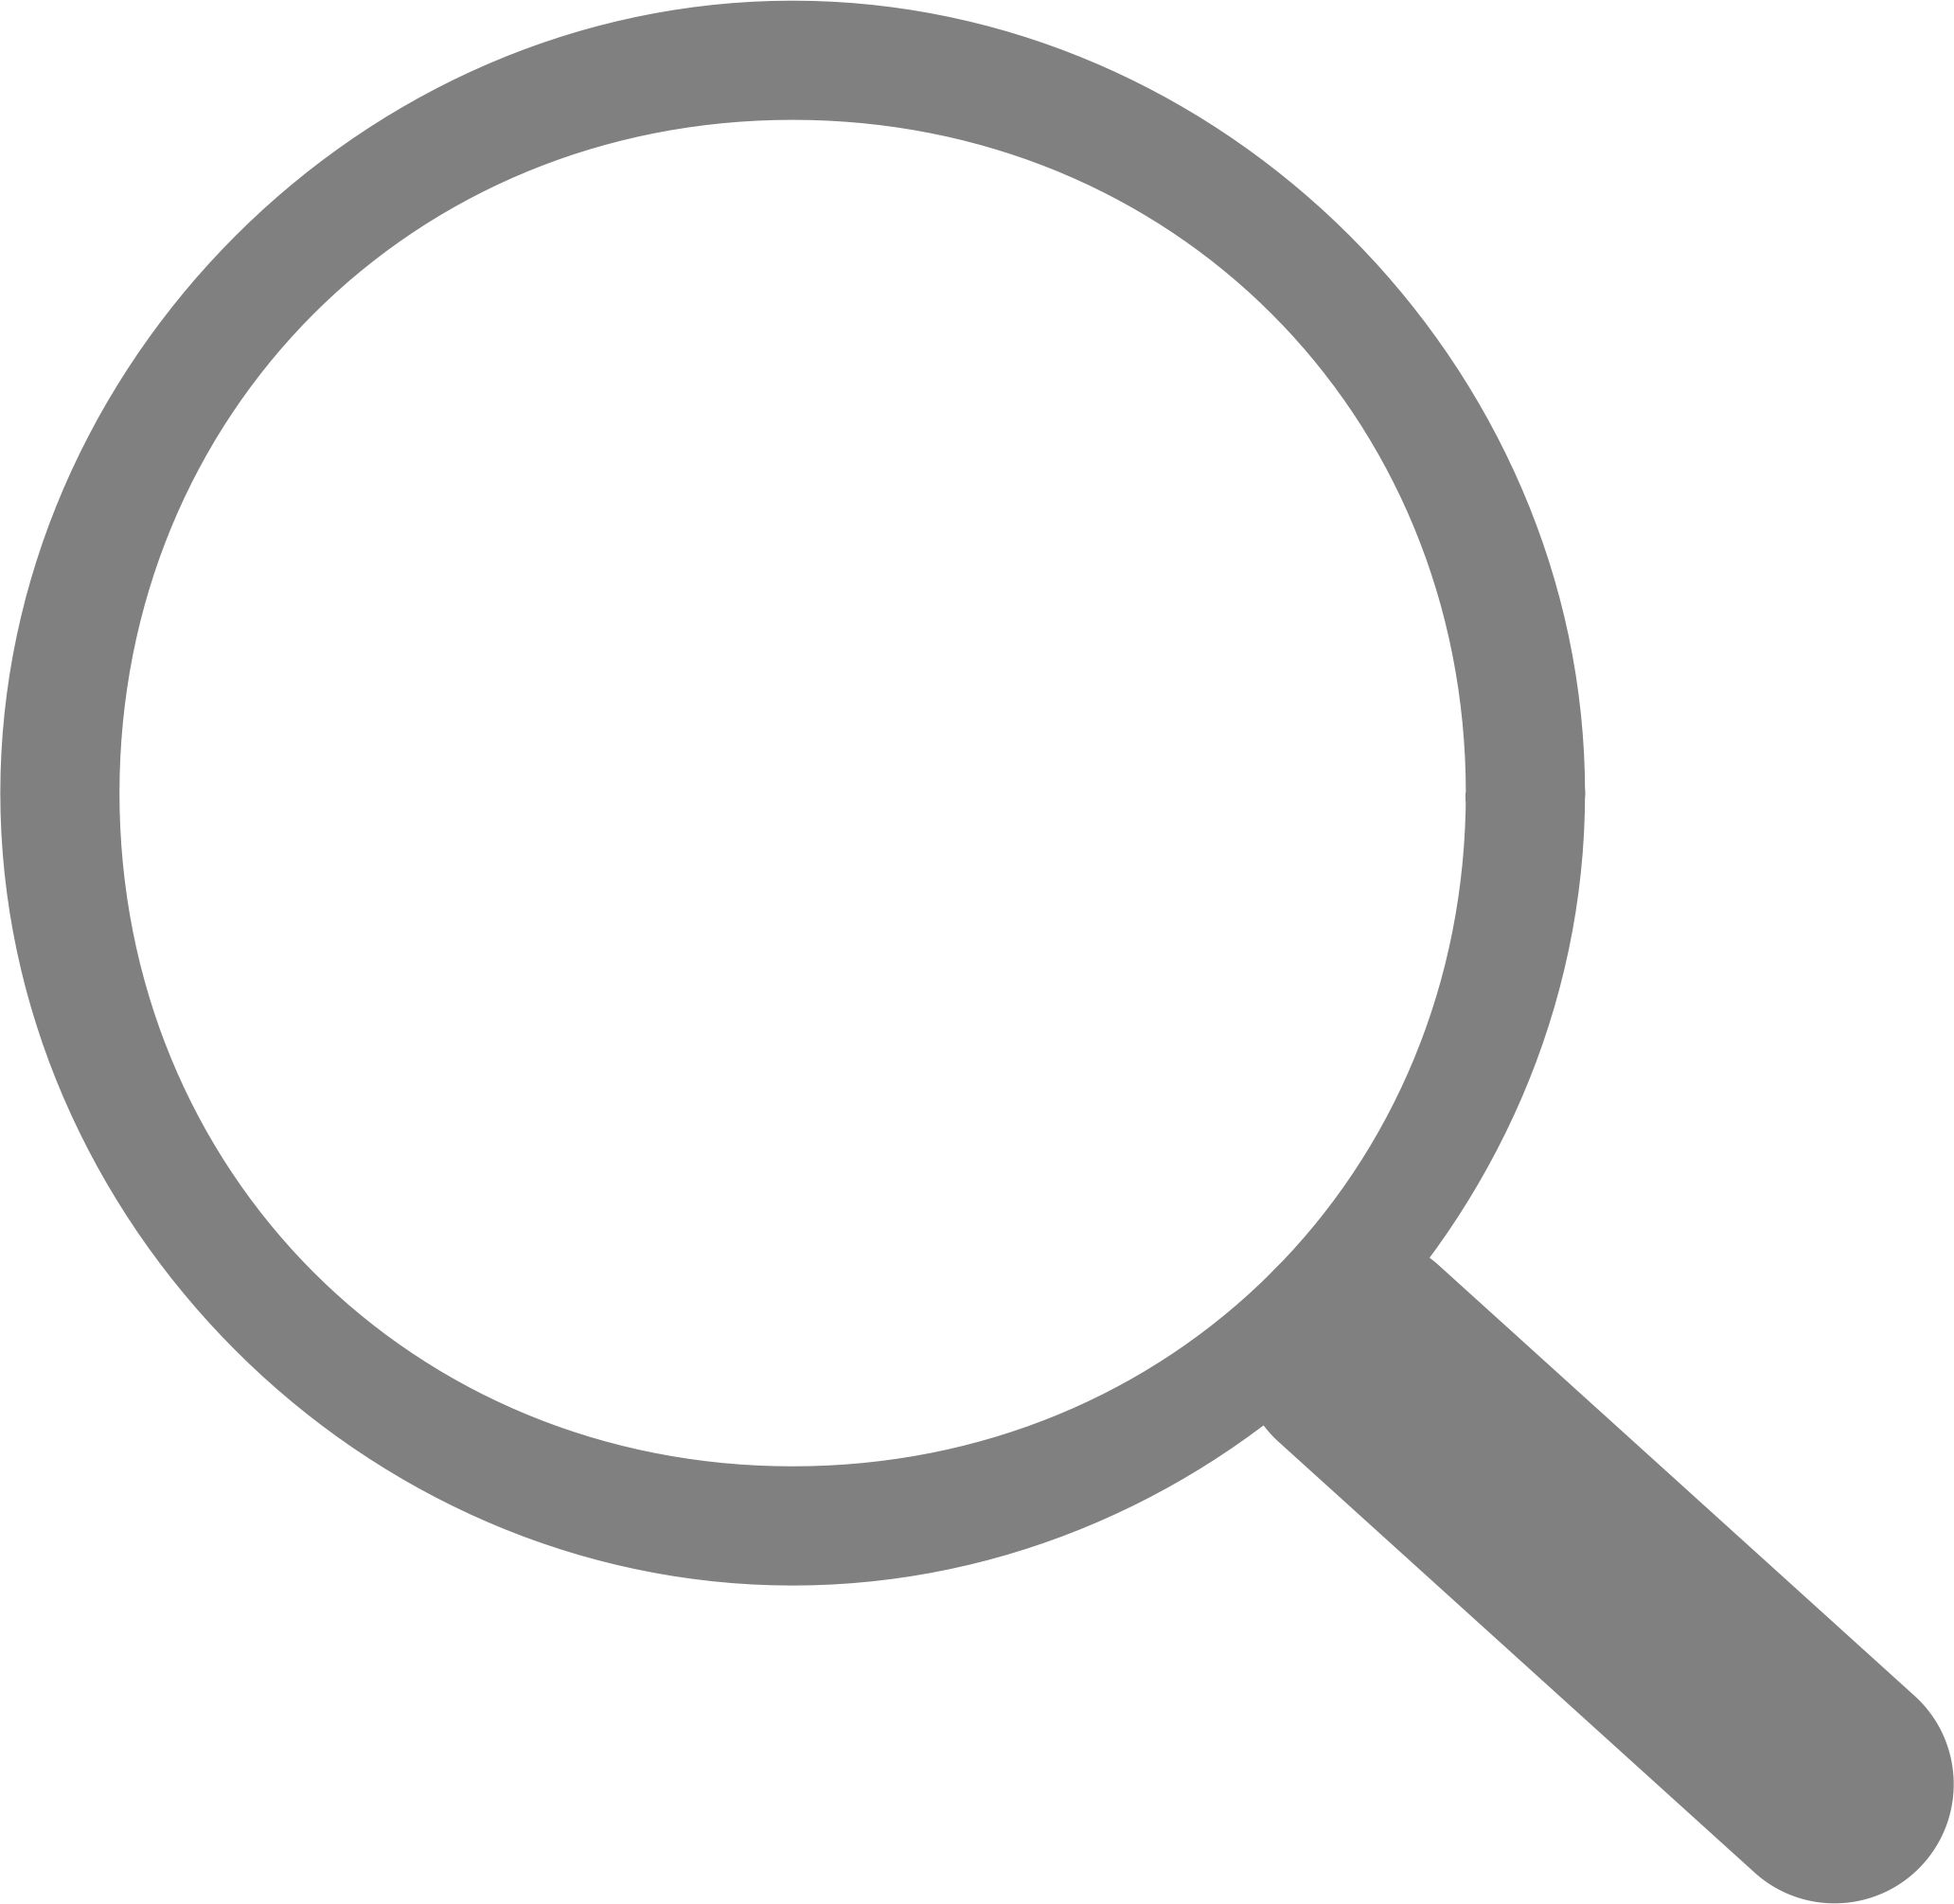 Search icon png. Neat simple transparent stickpng